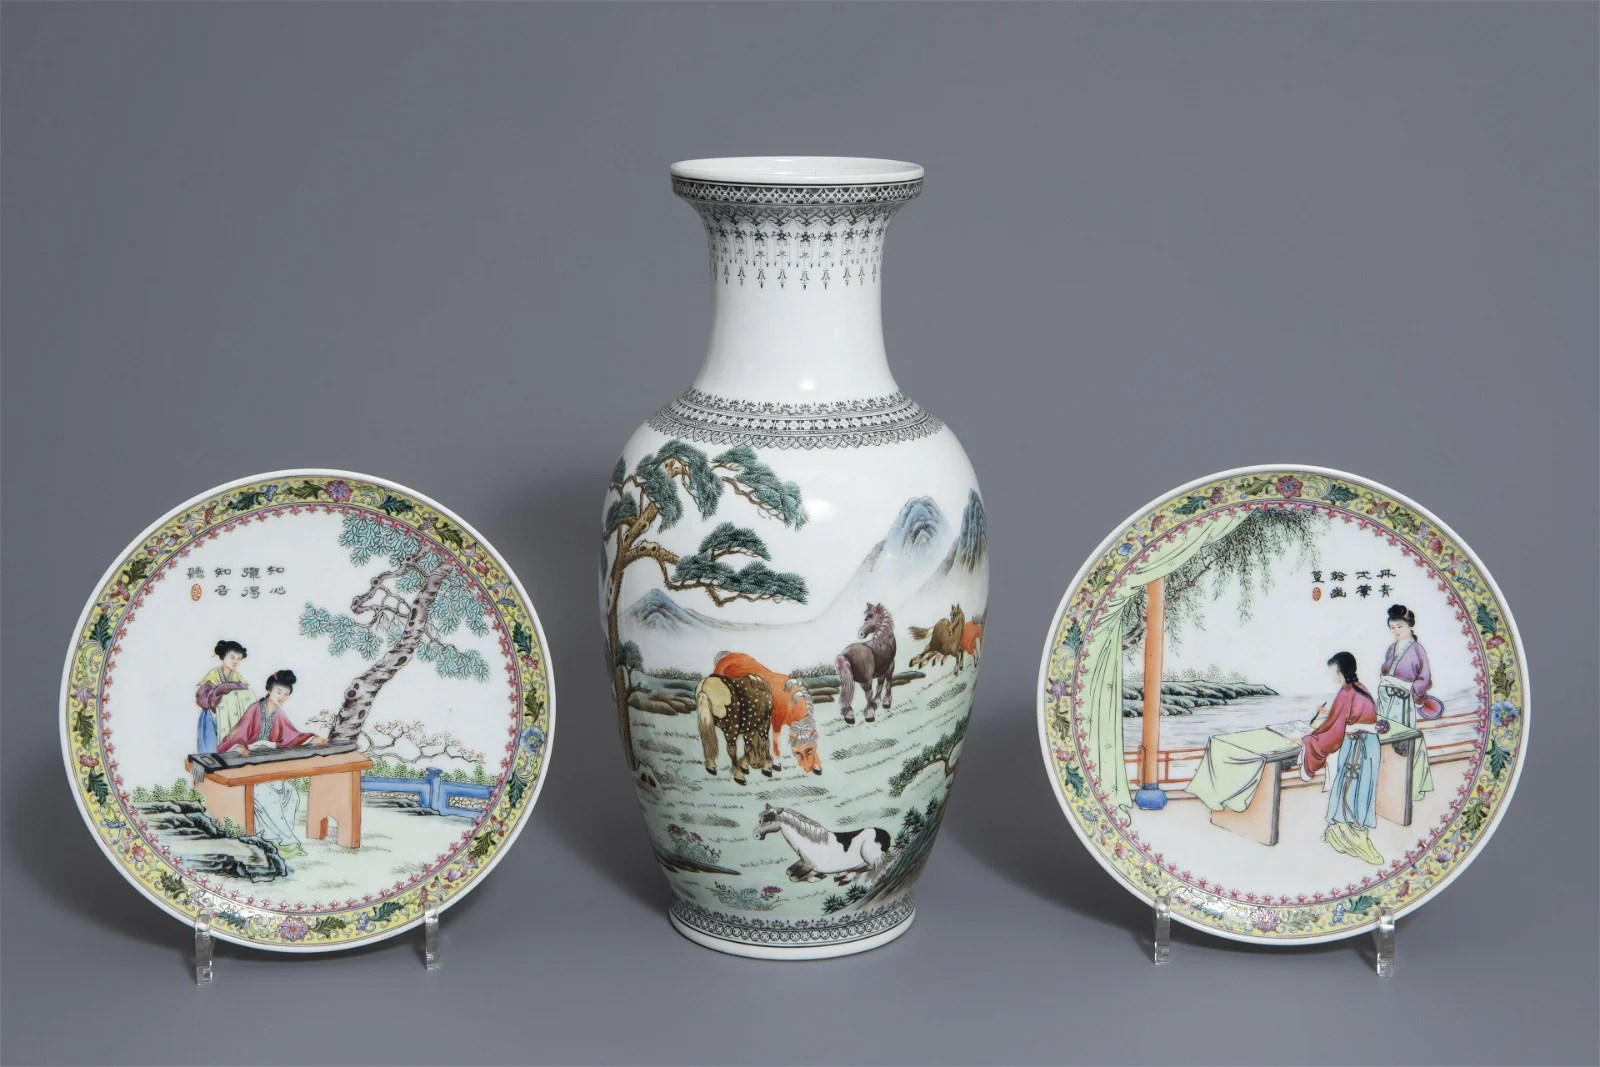 A pair of Chinese famille rose plates and a 'Horses of